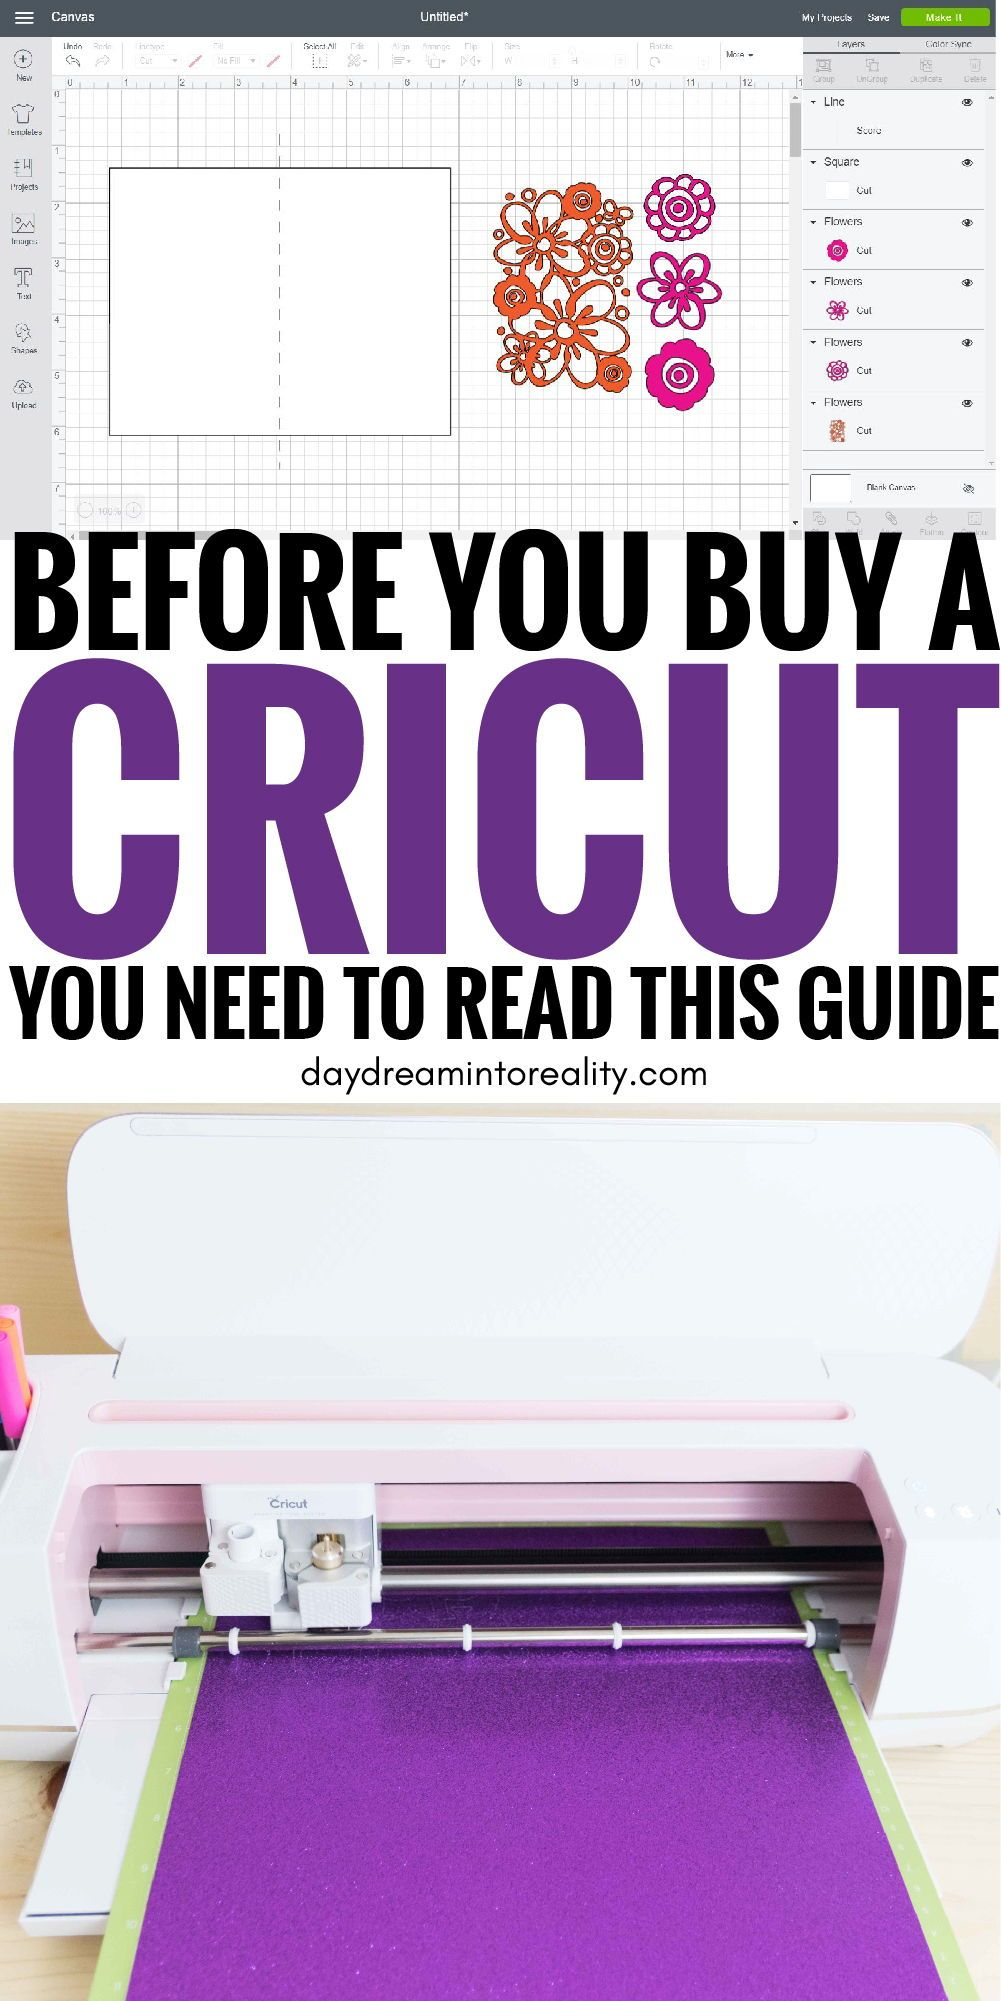 Do you want to get a Cricut? Let me save you the hours of research, and find out if a Cricut is the right fit for you or not. #cricut #cricutmaker #cricutmade #cricutexploreair2 #cricuttutorials